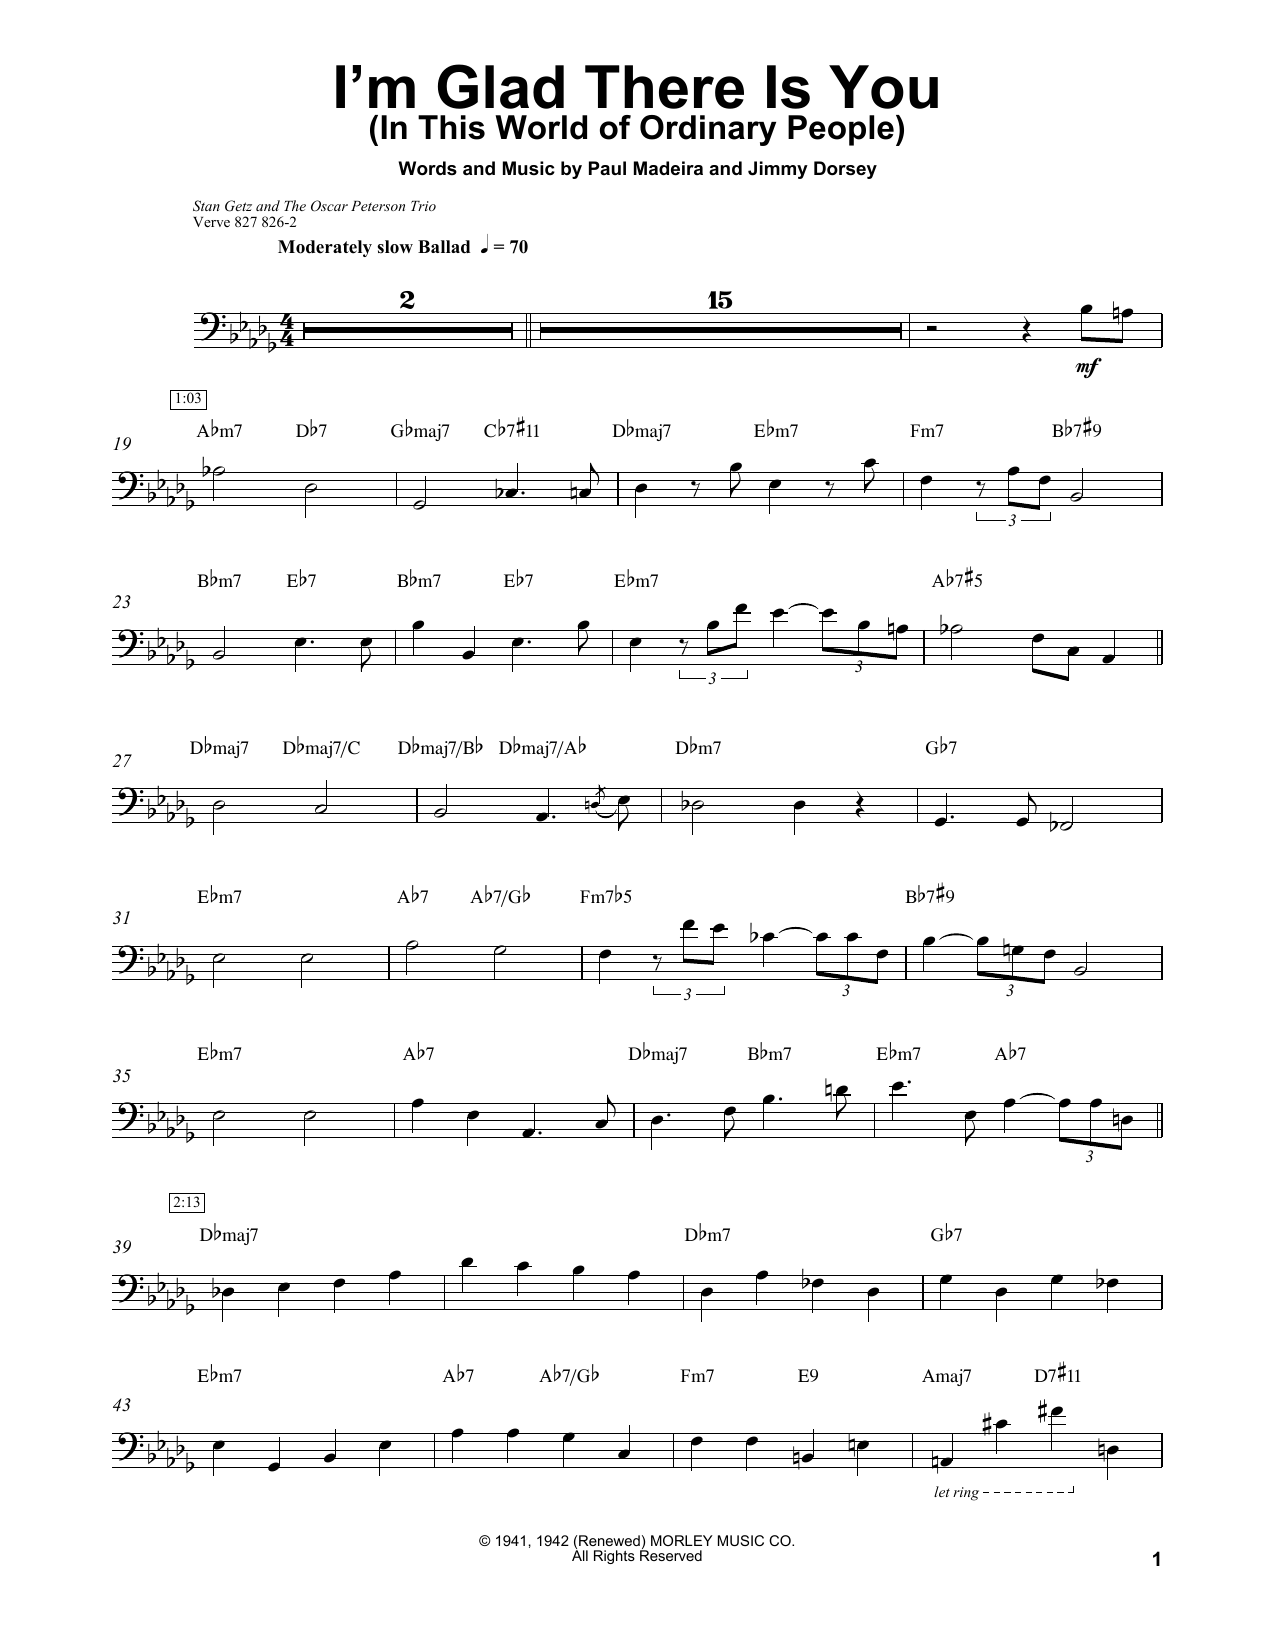 Ray Brown I'm Glad There Is You In This World Of Ordinary People Sheet  Music Notes, Chords   Download Printable Bass Transcription PDF Score    SKU ...